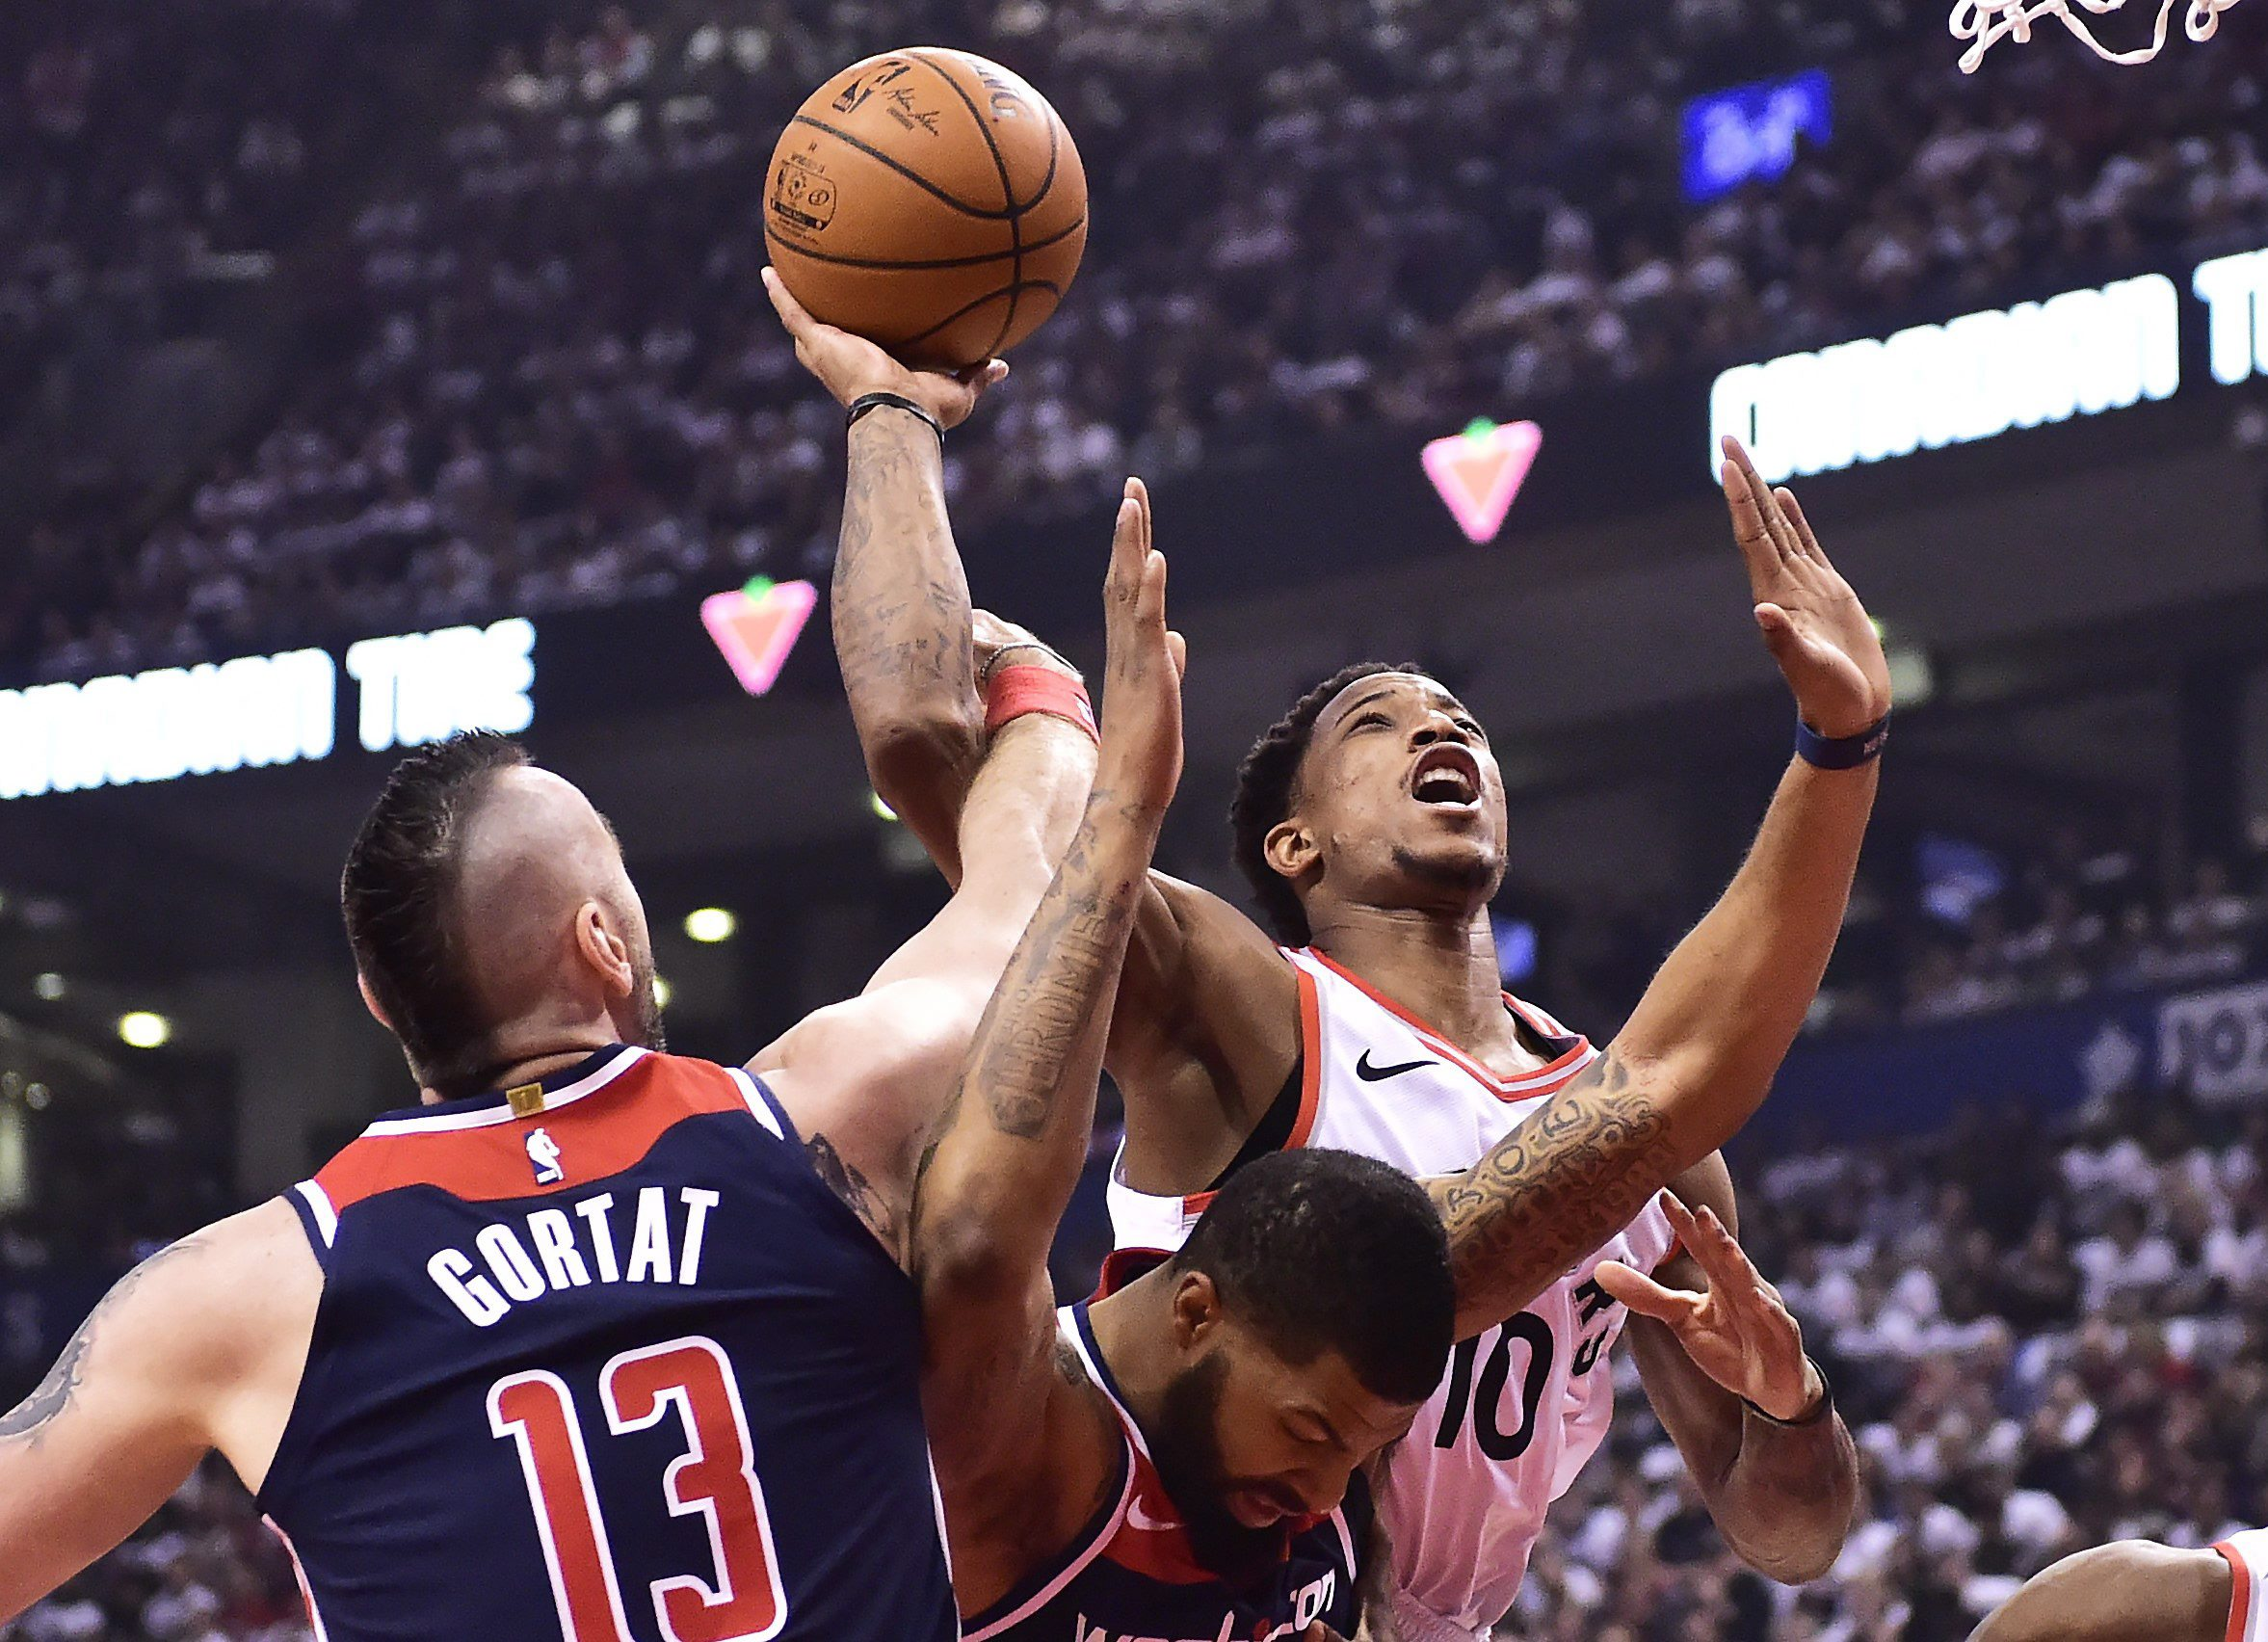 e950d2b04ba Raptors open NBA playoffs with win over Wizards